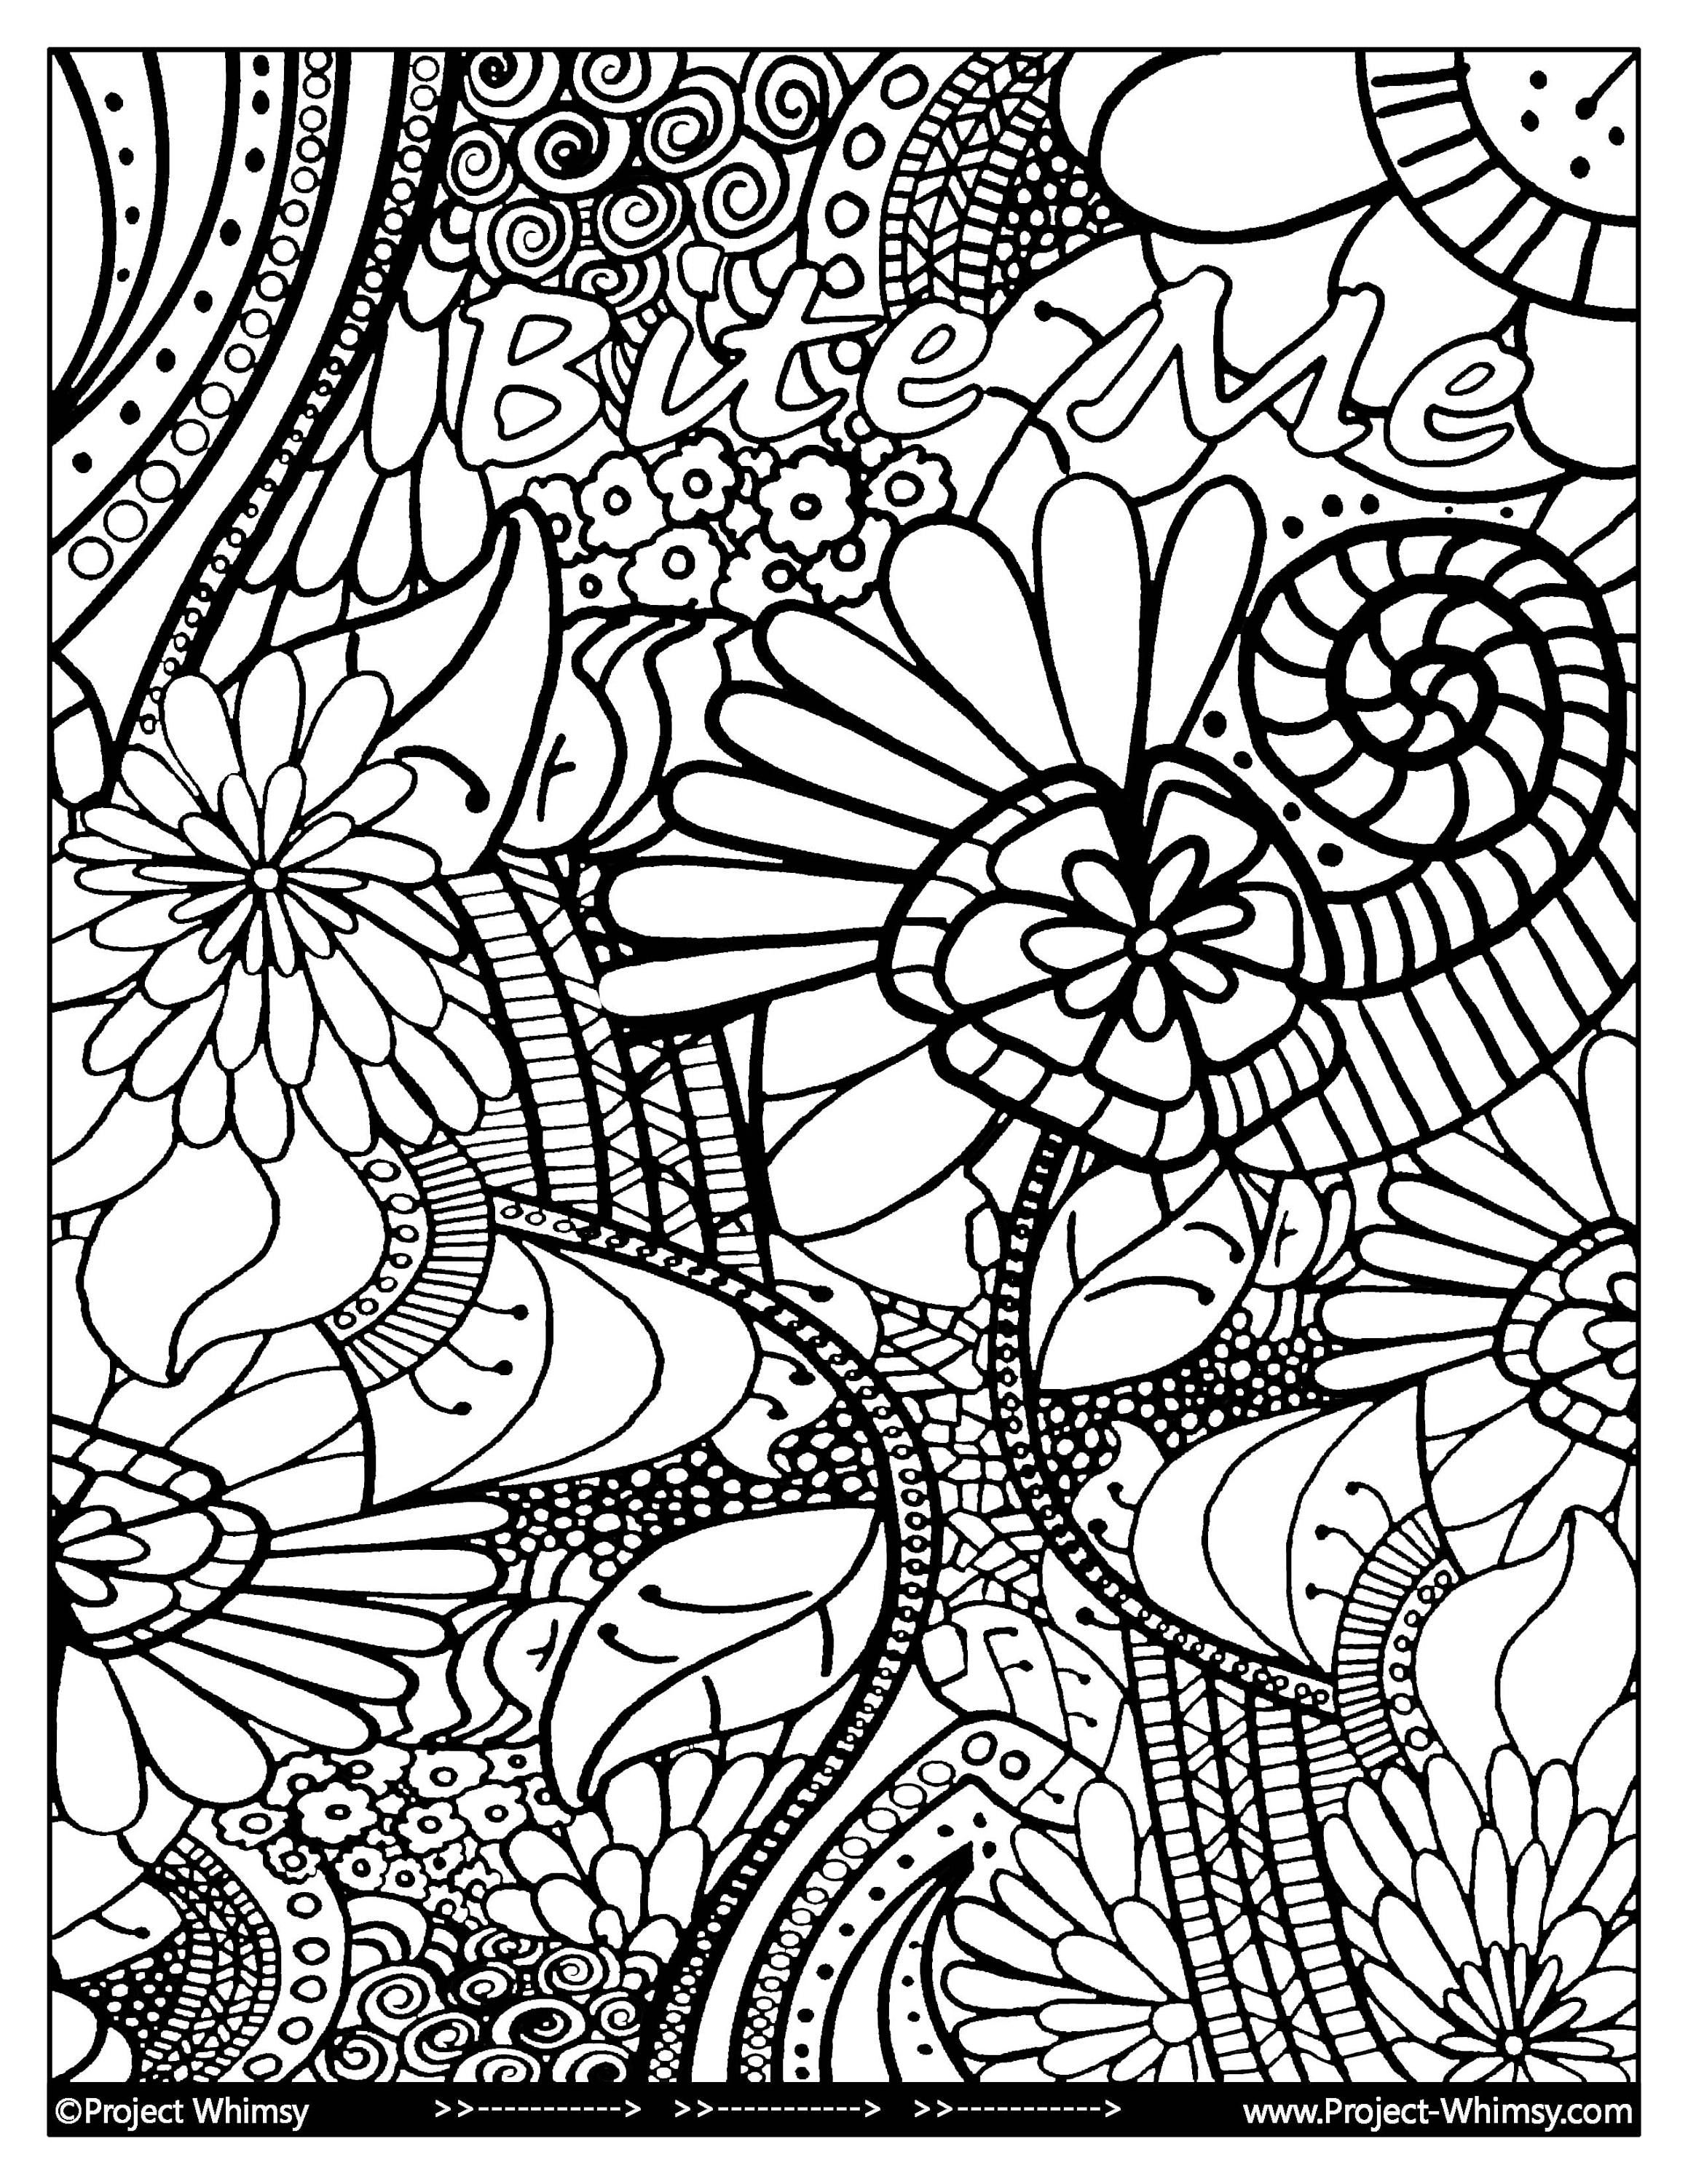 Bite Me Adult Coloring Book Instant Download Printing